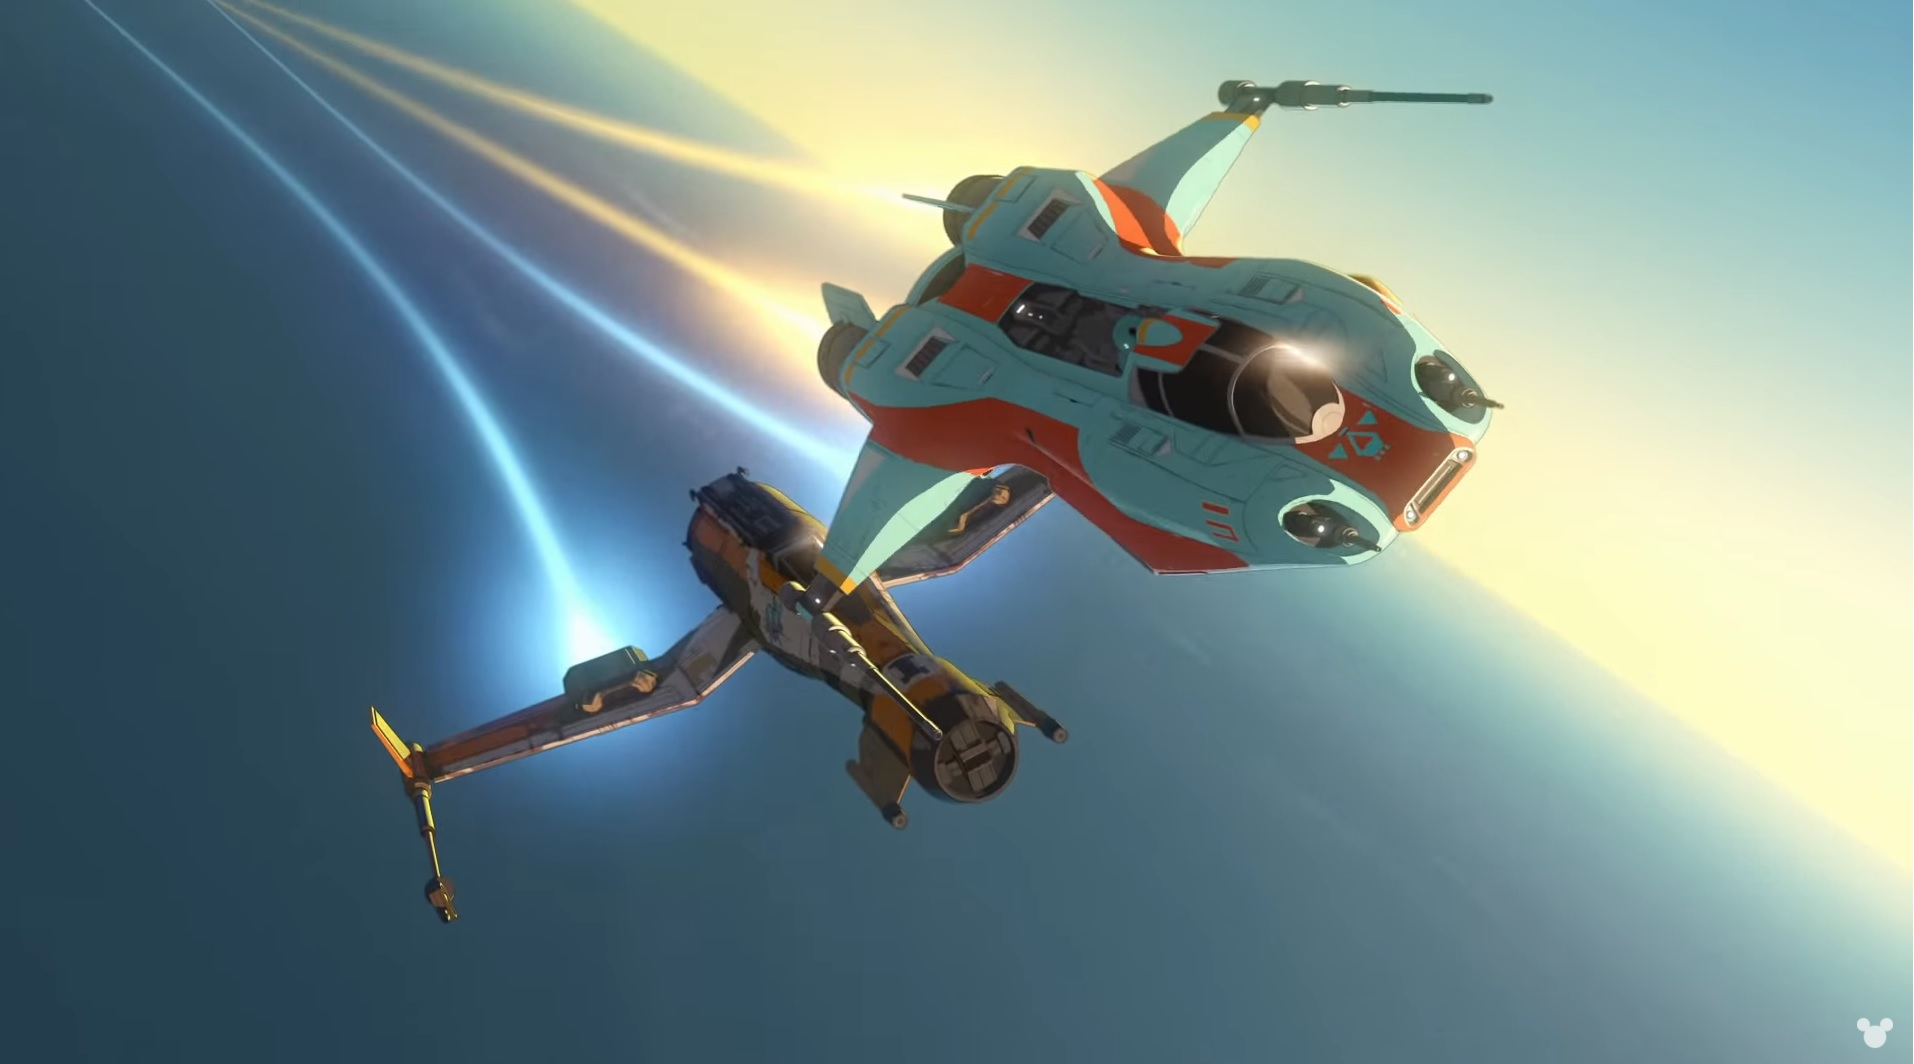 'Star Wars Resistance' trailer shows off its anime style